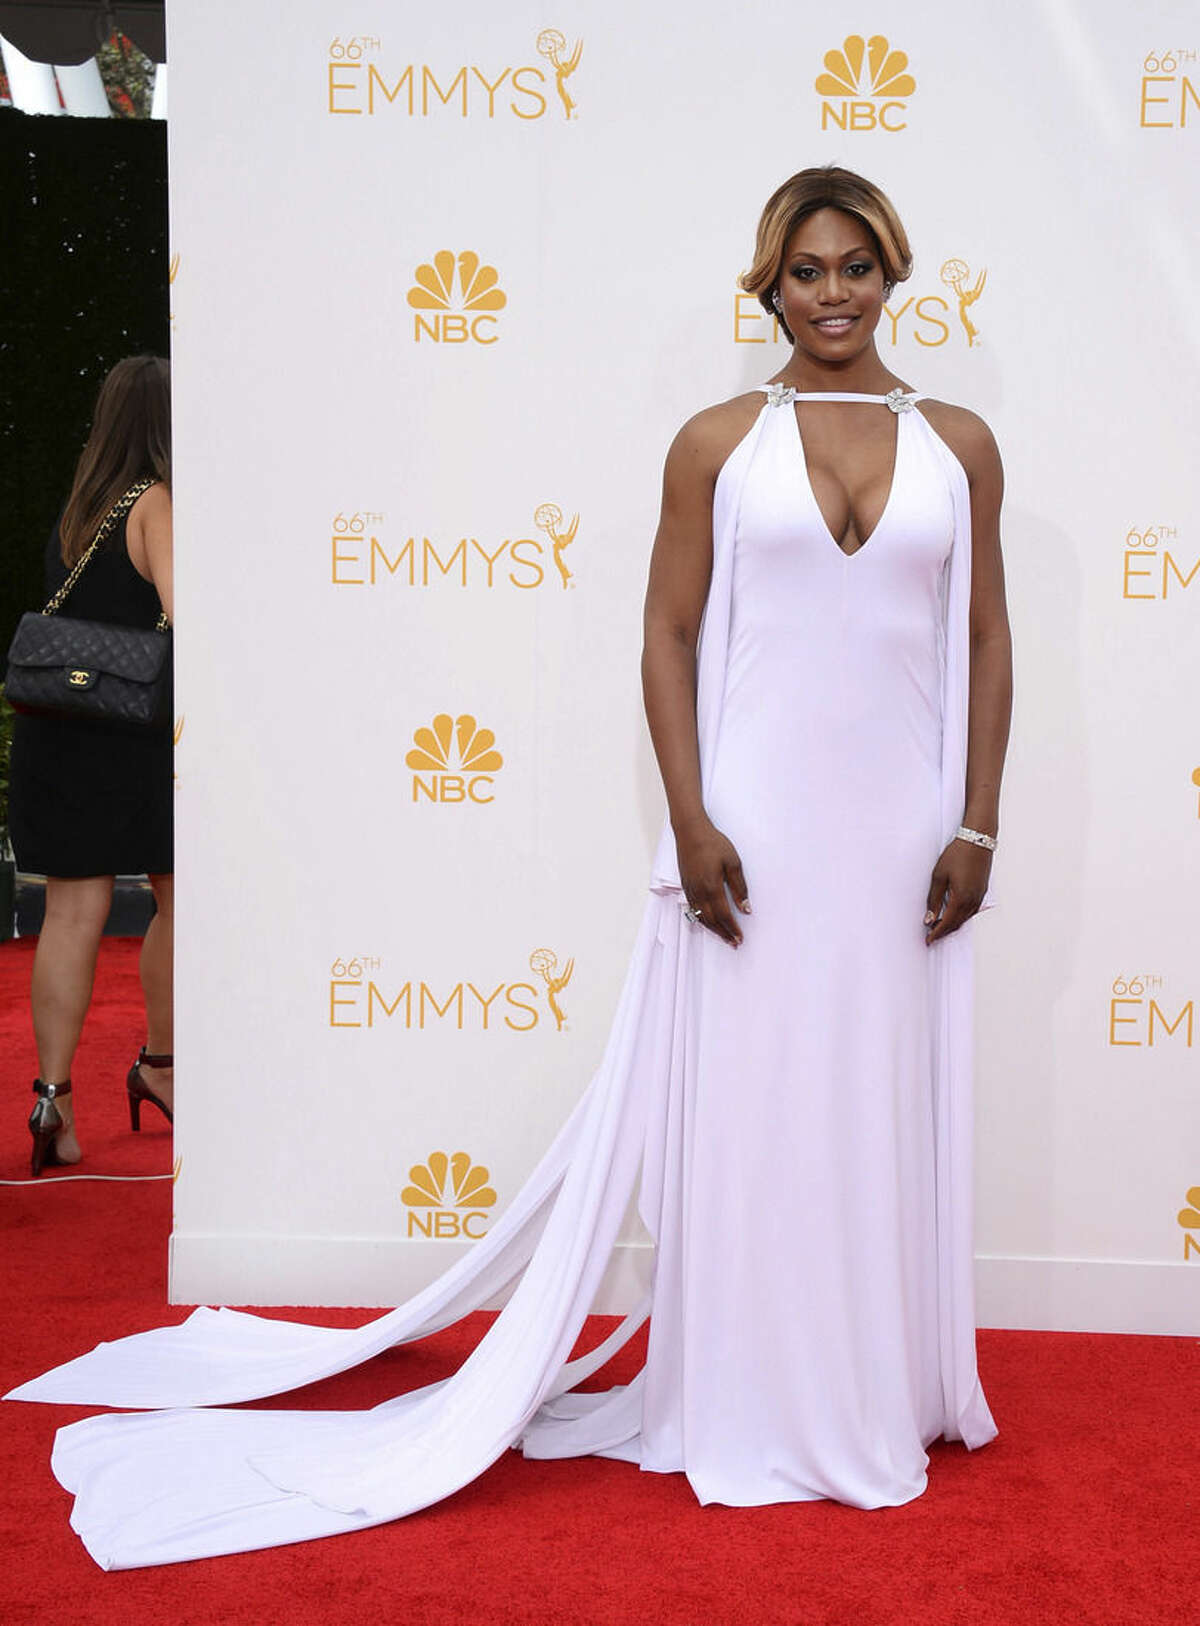 Laverne Cox arrives at the 66th Annual Primetime Emmy Awards at the Nokia Theatre L.A. Live on Monday, Aug. 25, 2014, in Los Angeles. (Photo by Jordan Strauss/Invision/AP)